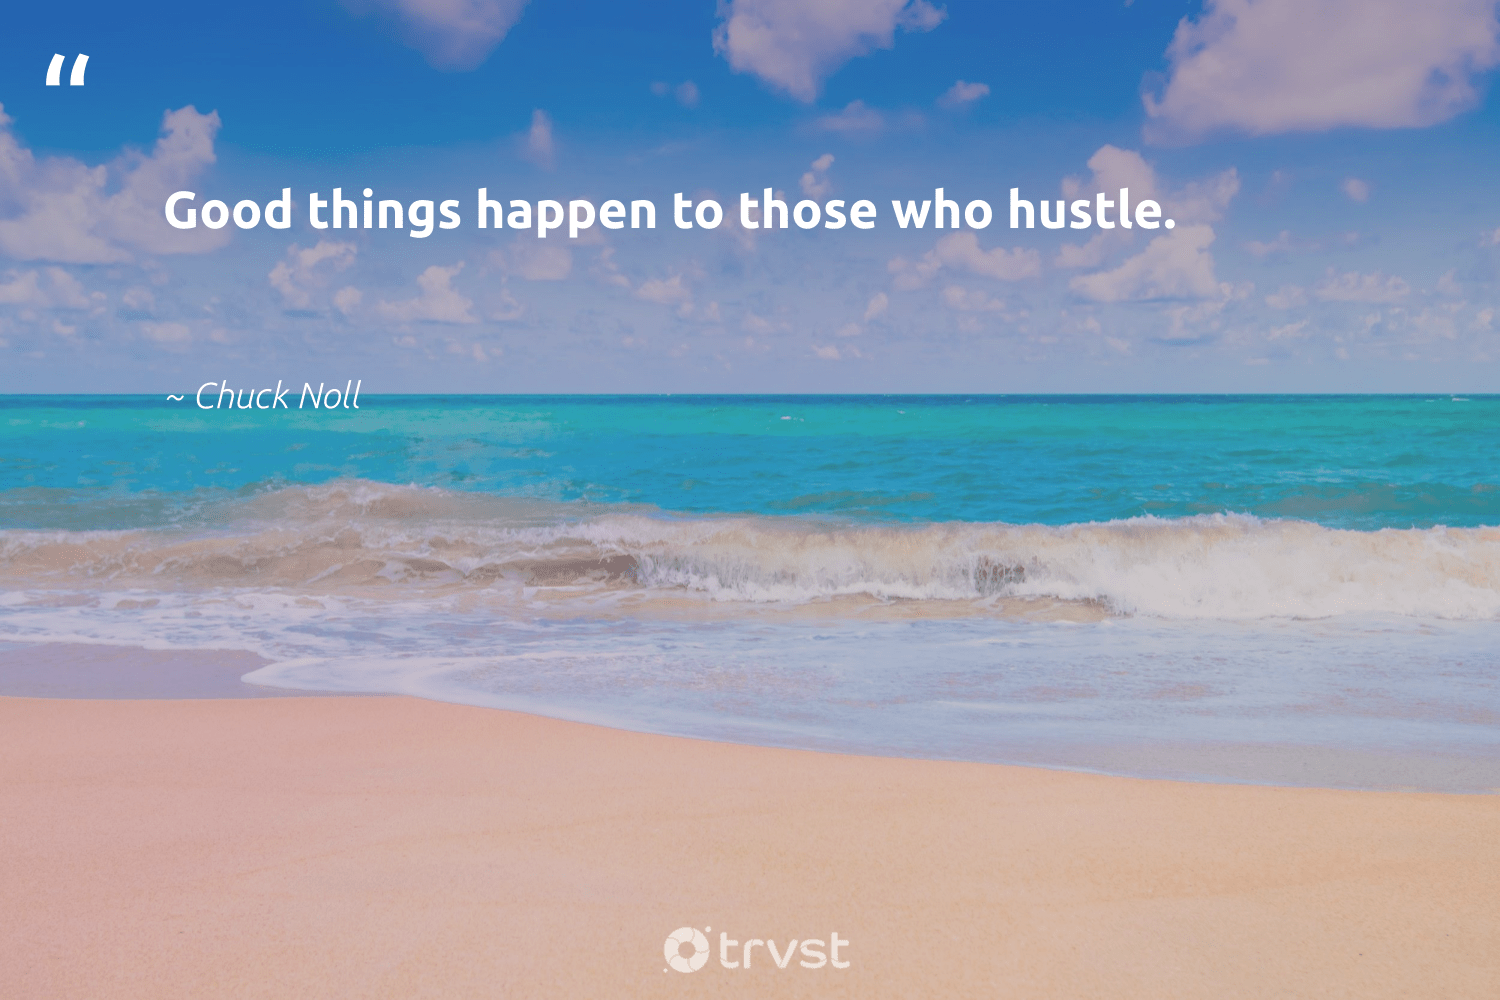 """""""Good things happen to those who hustle.""""  - Chuck Noll #trvst #quotes #hustle #begreat #collectiveaction #softskills #impact #futureofwork #planetearthfirst #nevergiveup #dosomething #dotherightthing"""